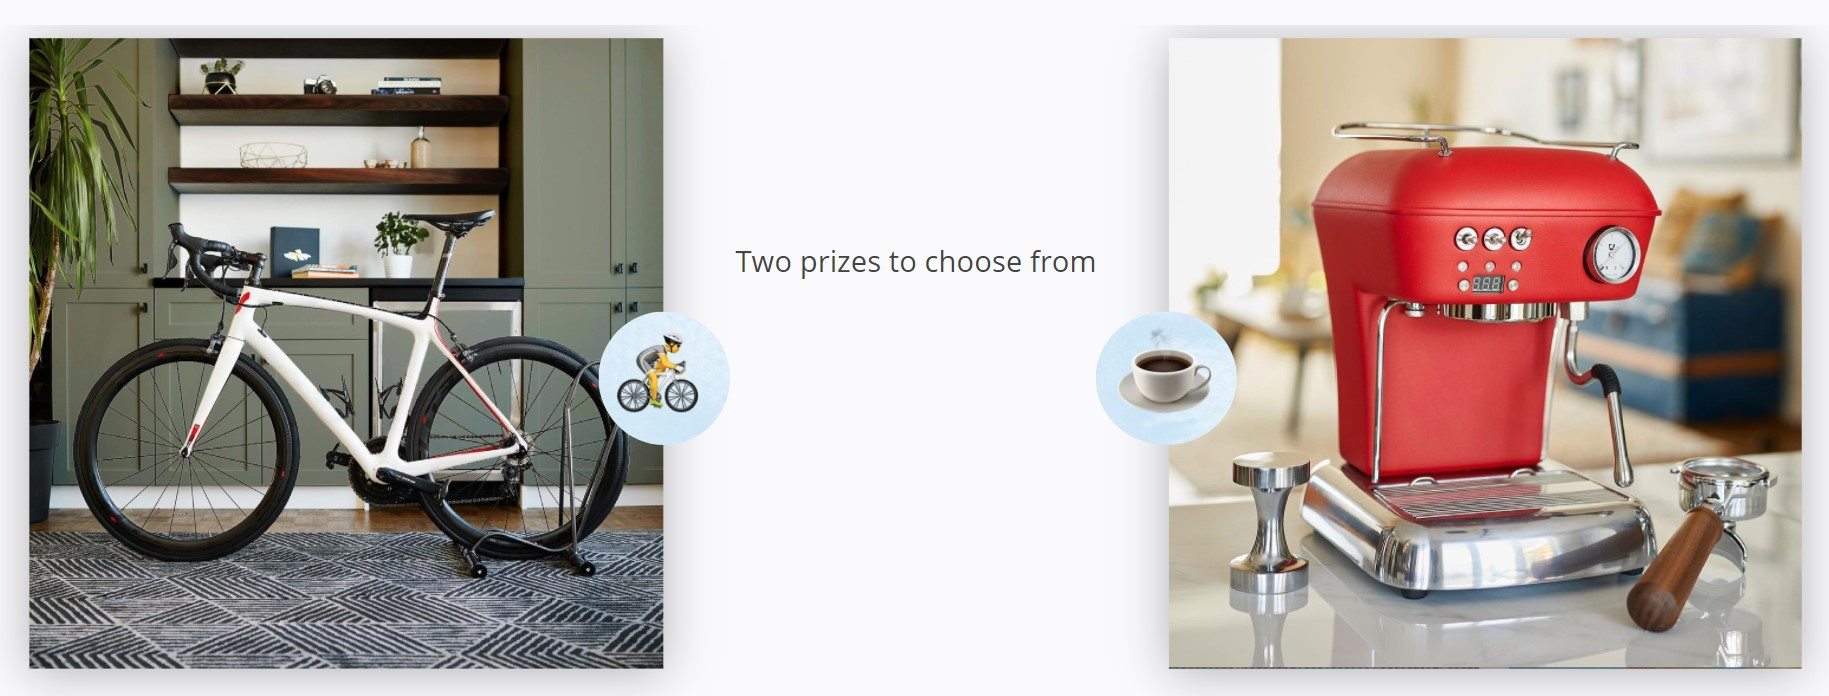 Silk Canada - Instagram - Choose Your Prize Giveaway